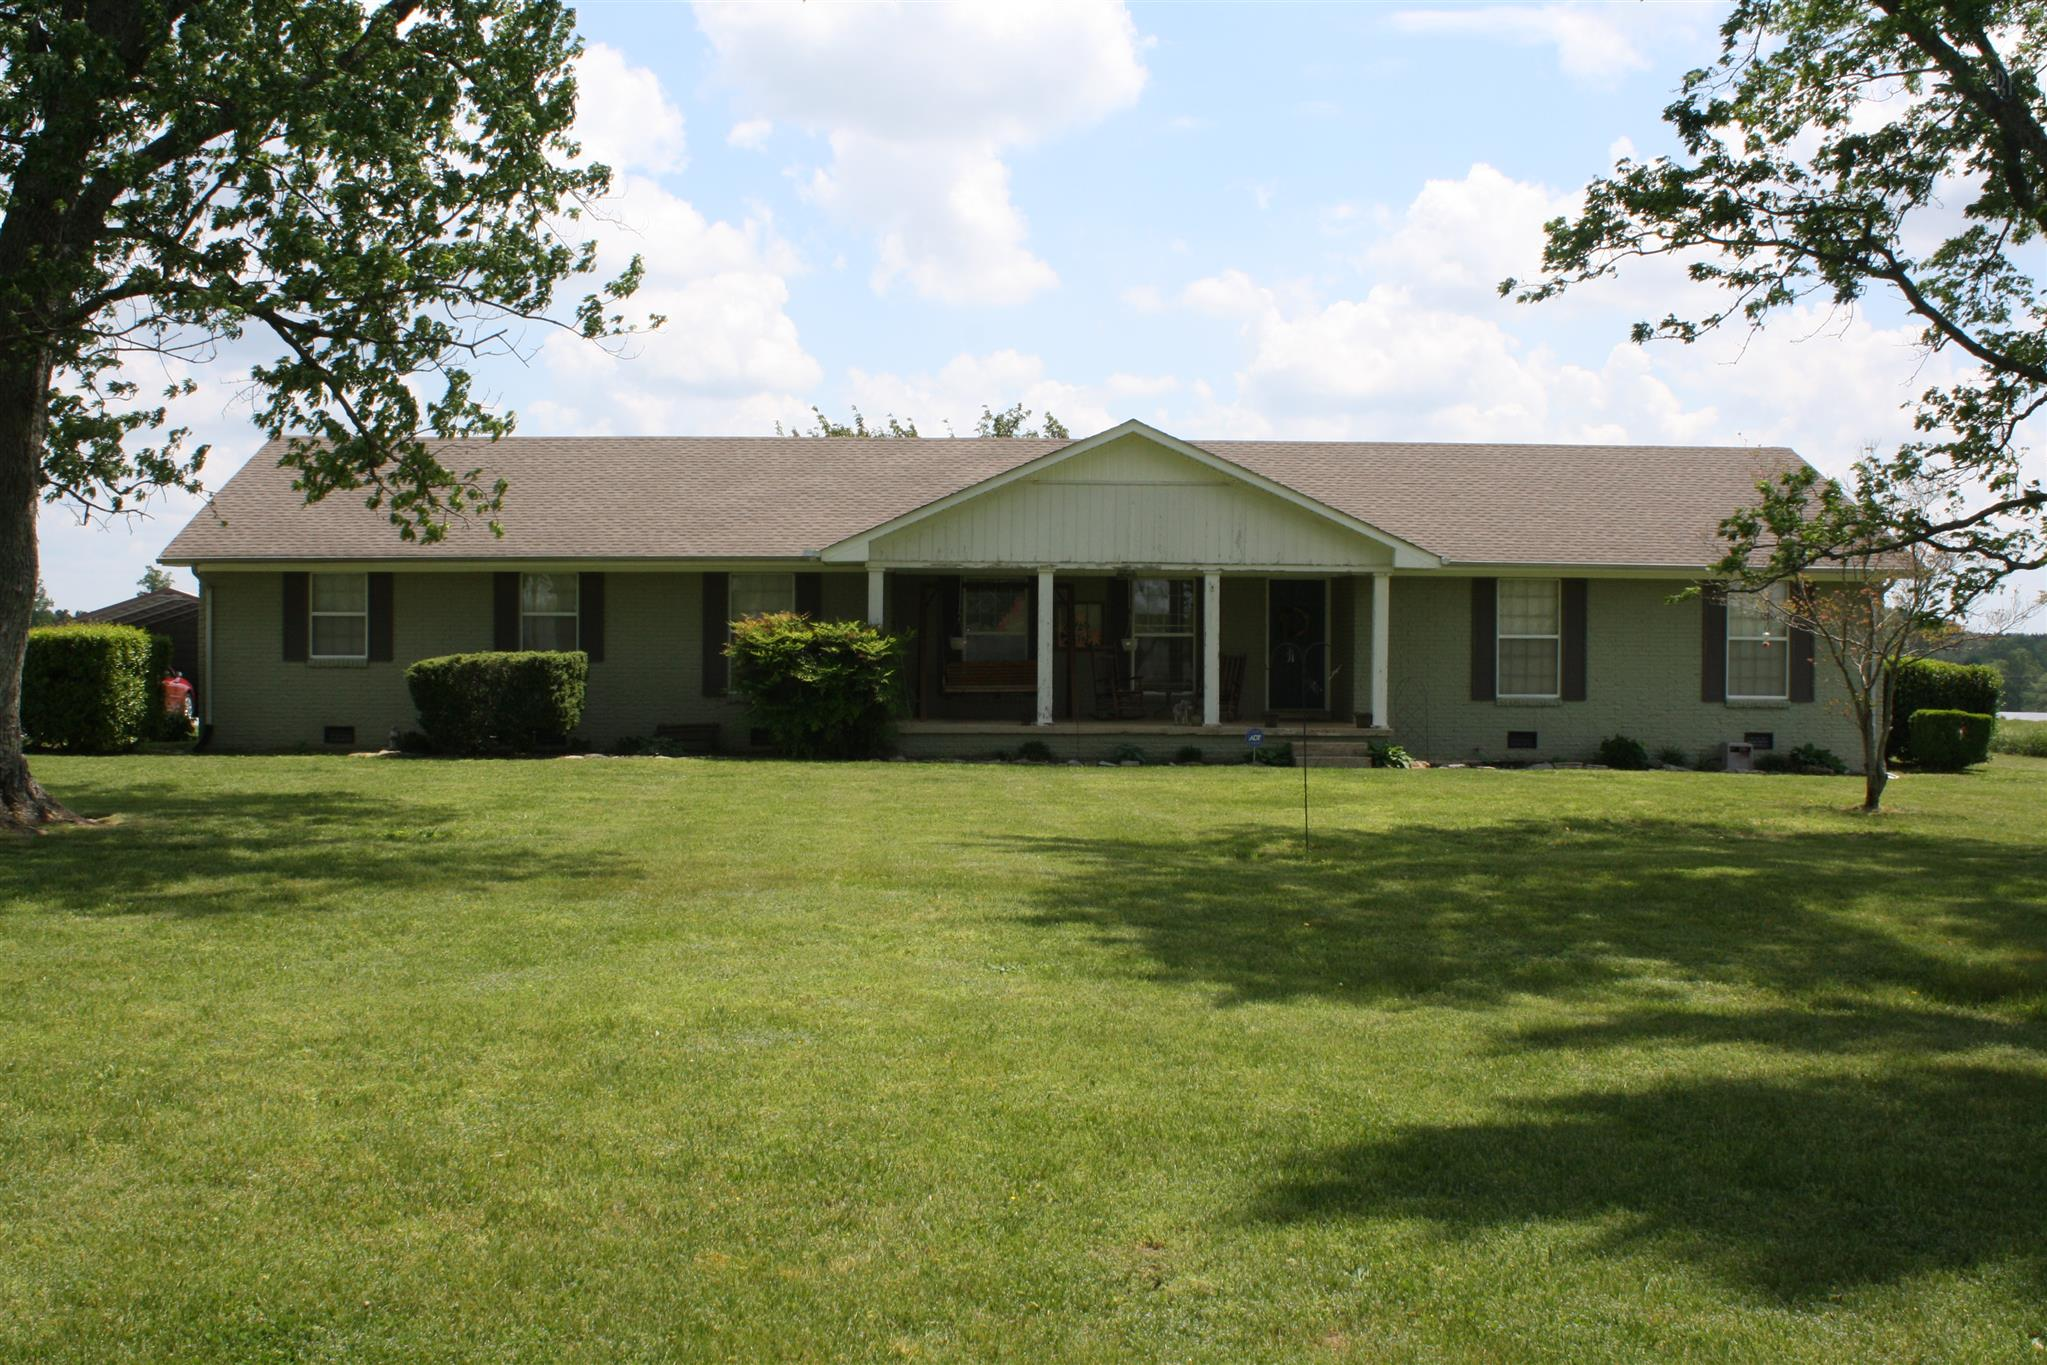 244 Old Jackson Hwy, Loretto, TN 38469